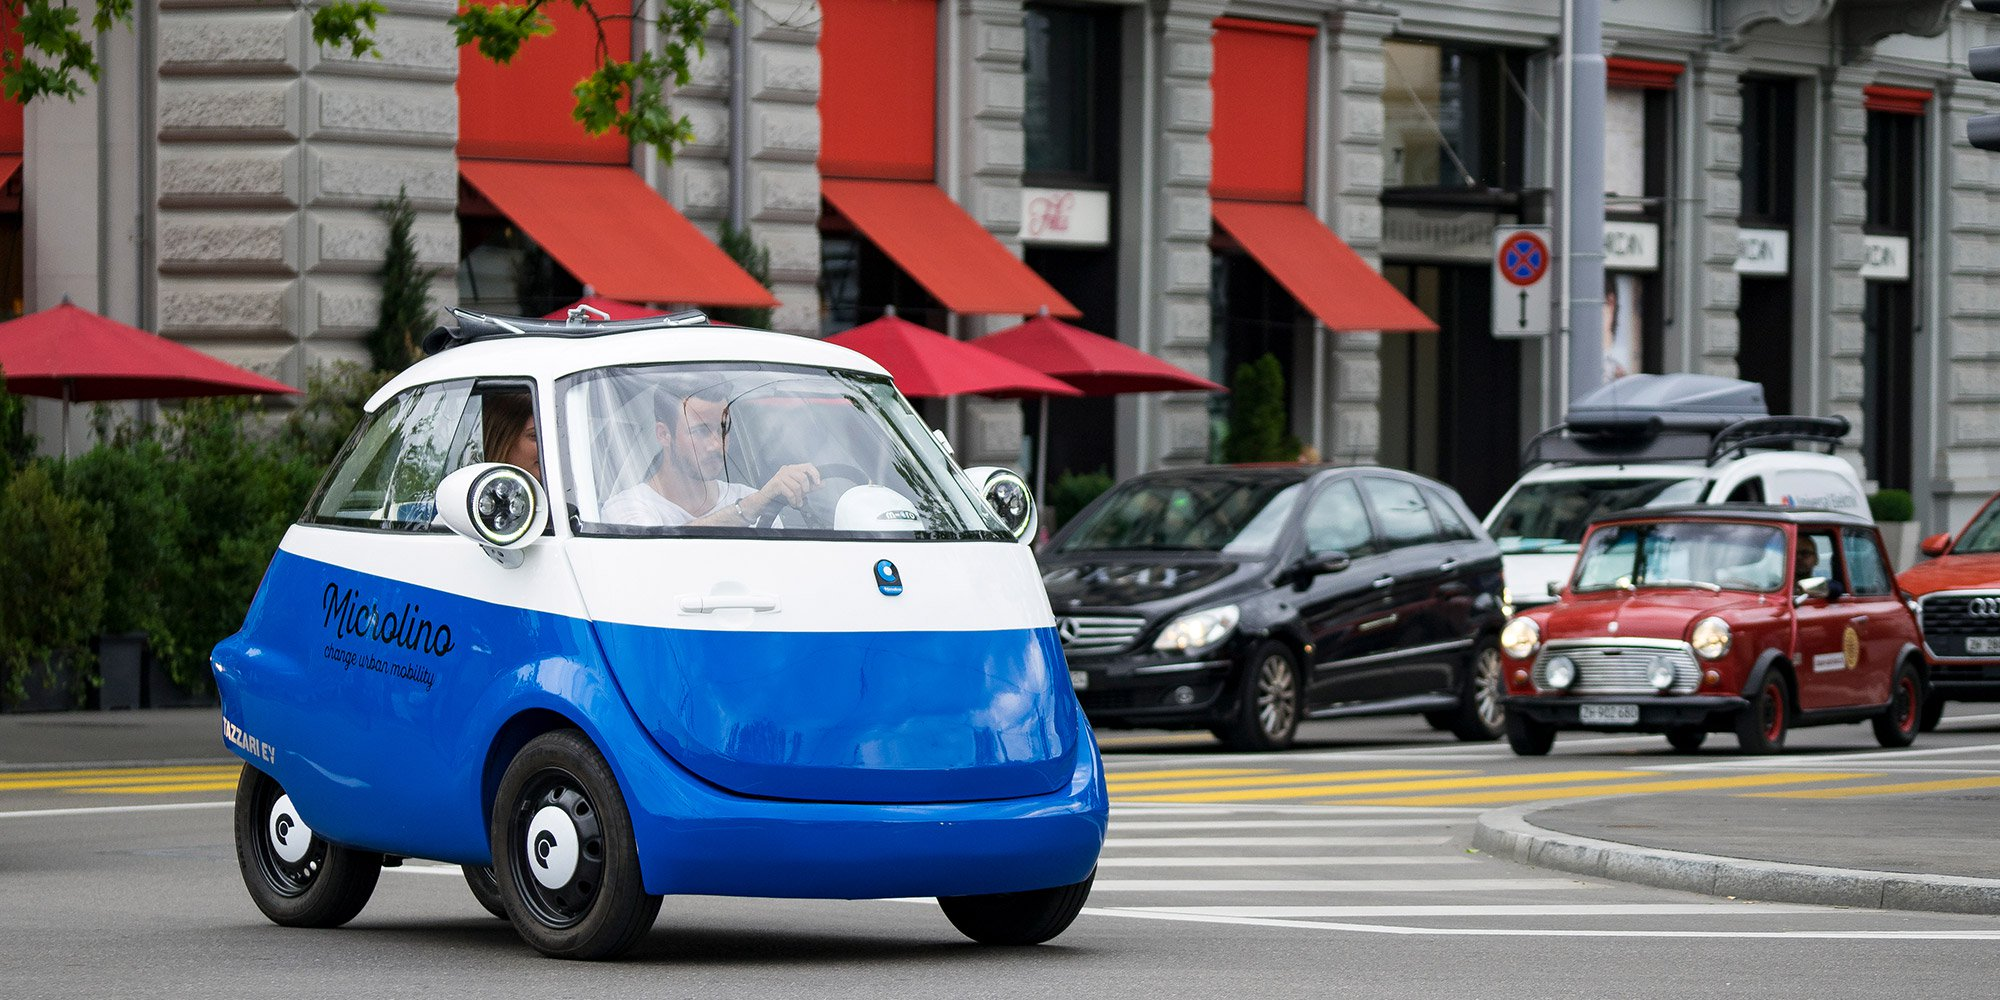 The adorable Microlino car just got approved for European streets